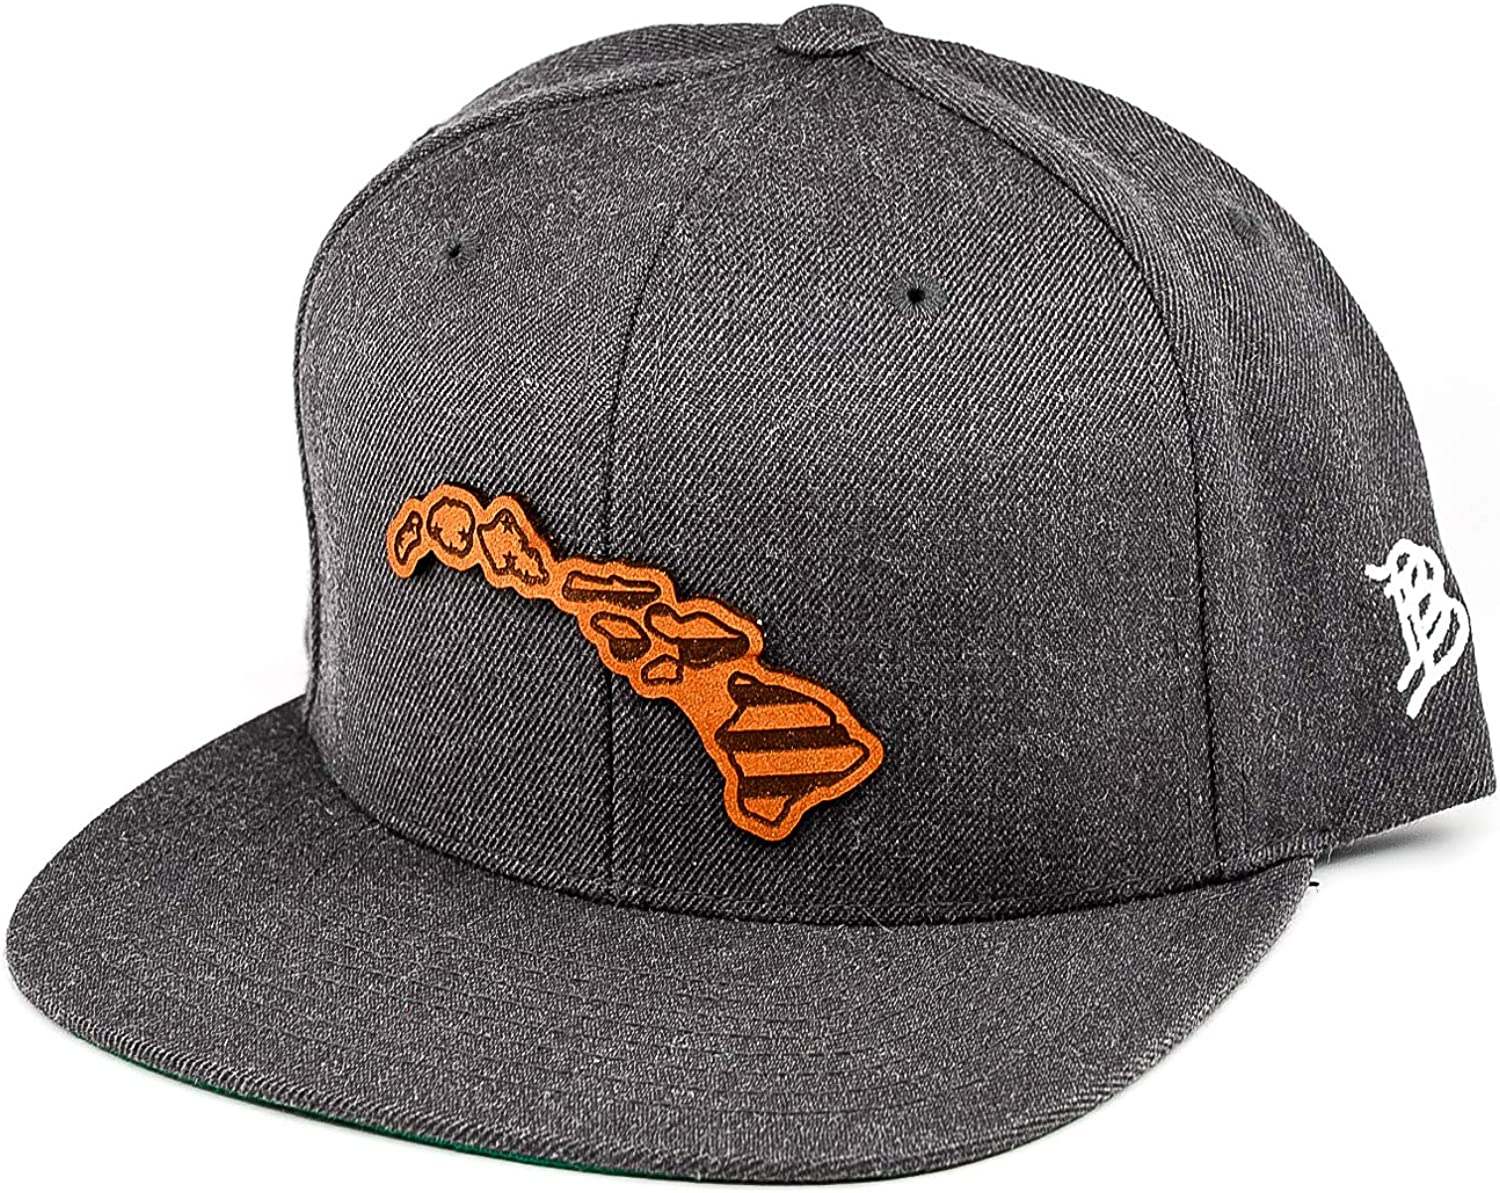 OSFA//Charcoal Branded Bills /'Hawaii Patriot/' Leather Patch Hat Snapback Hat